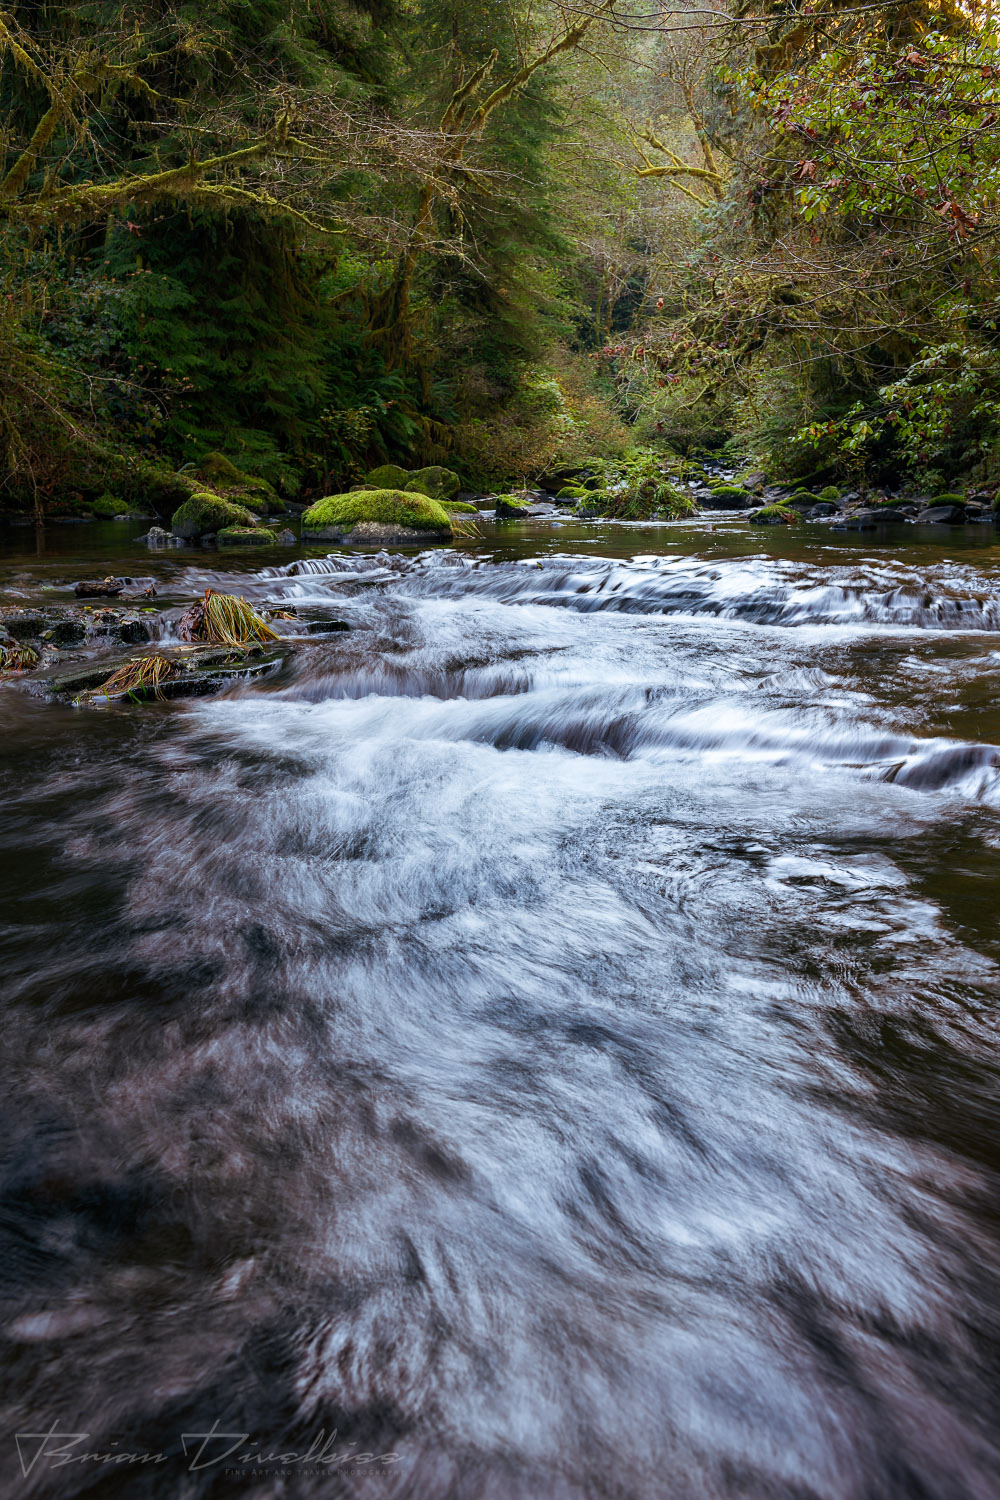 Rippling, flowing waters of a creek surrounded by greenery in Oregon.